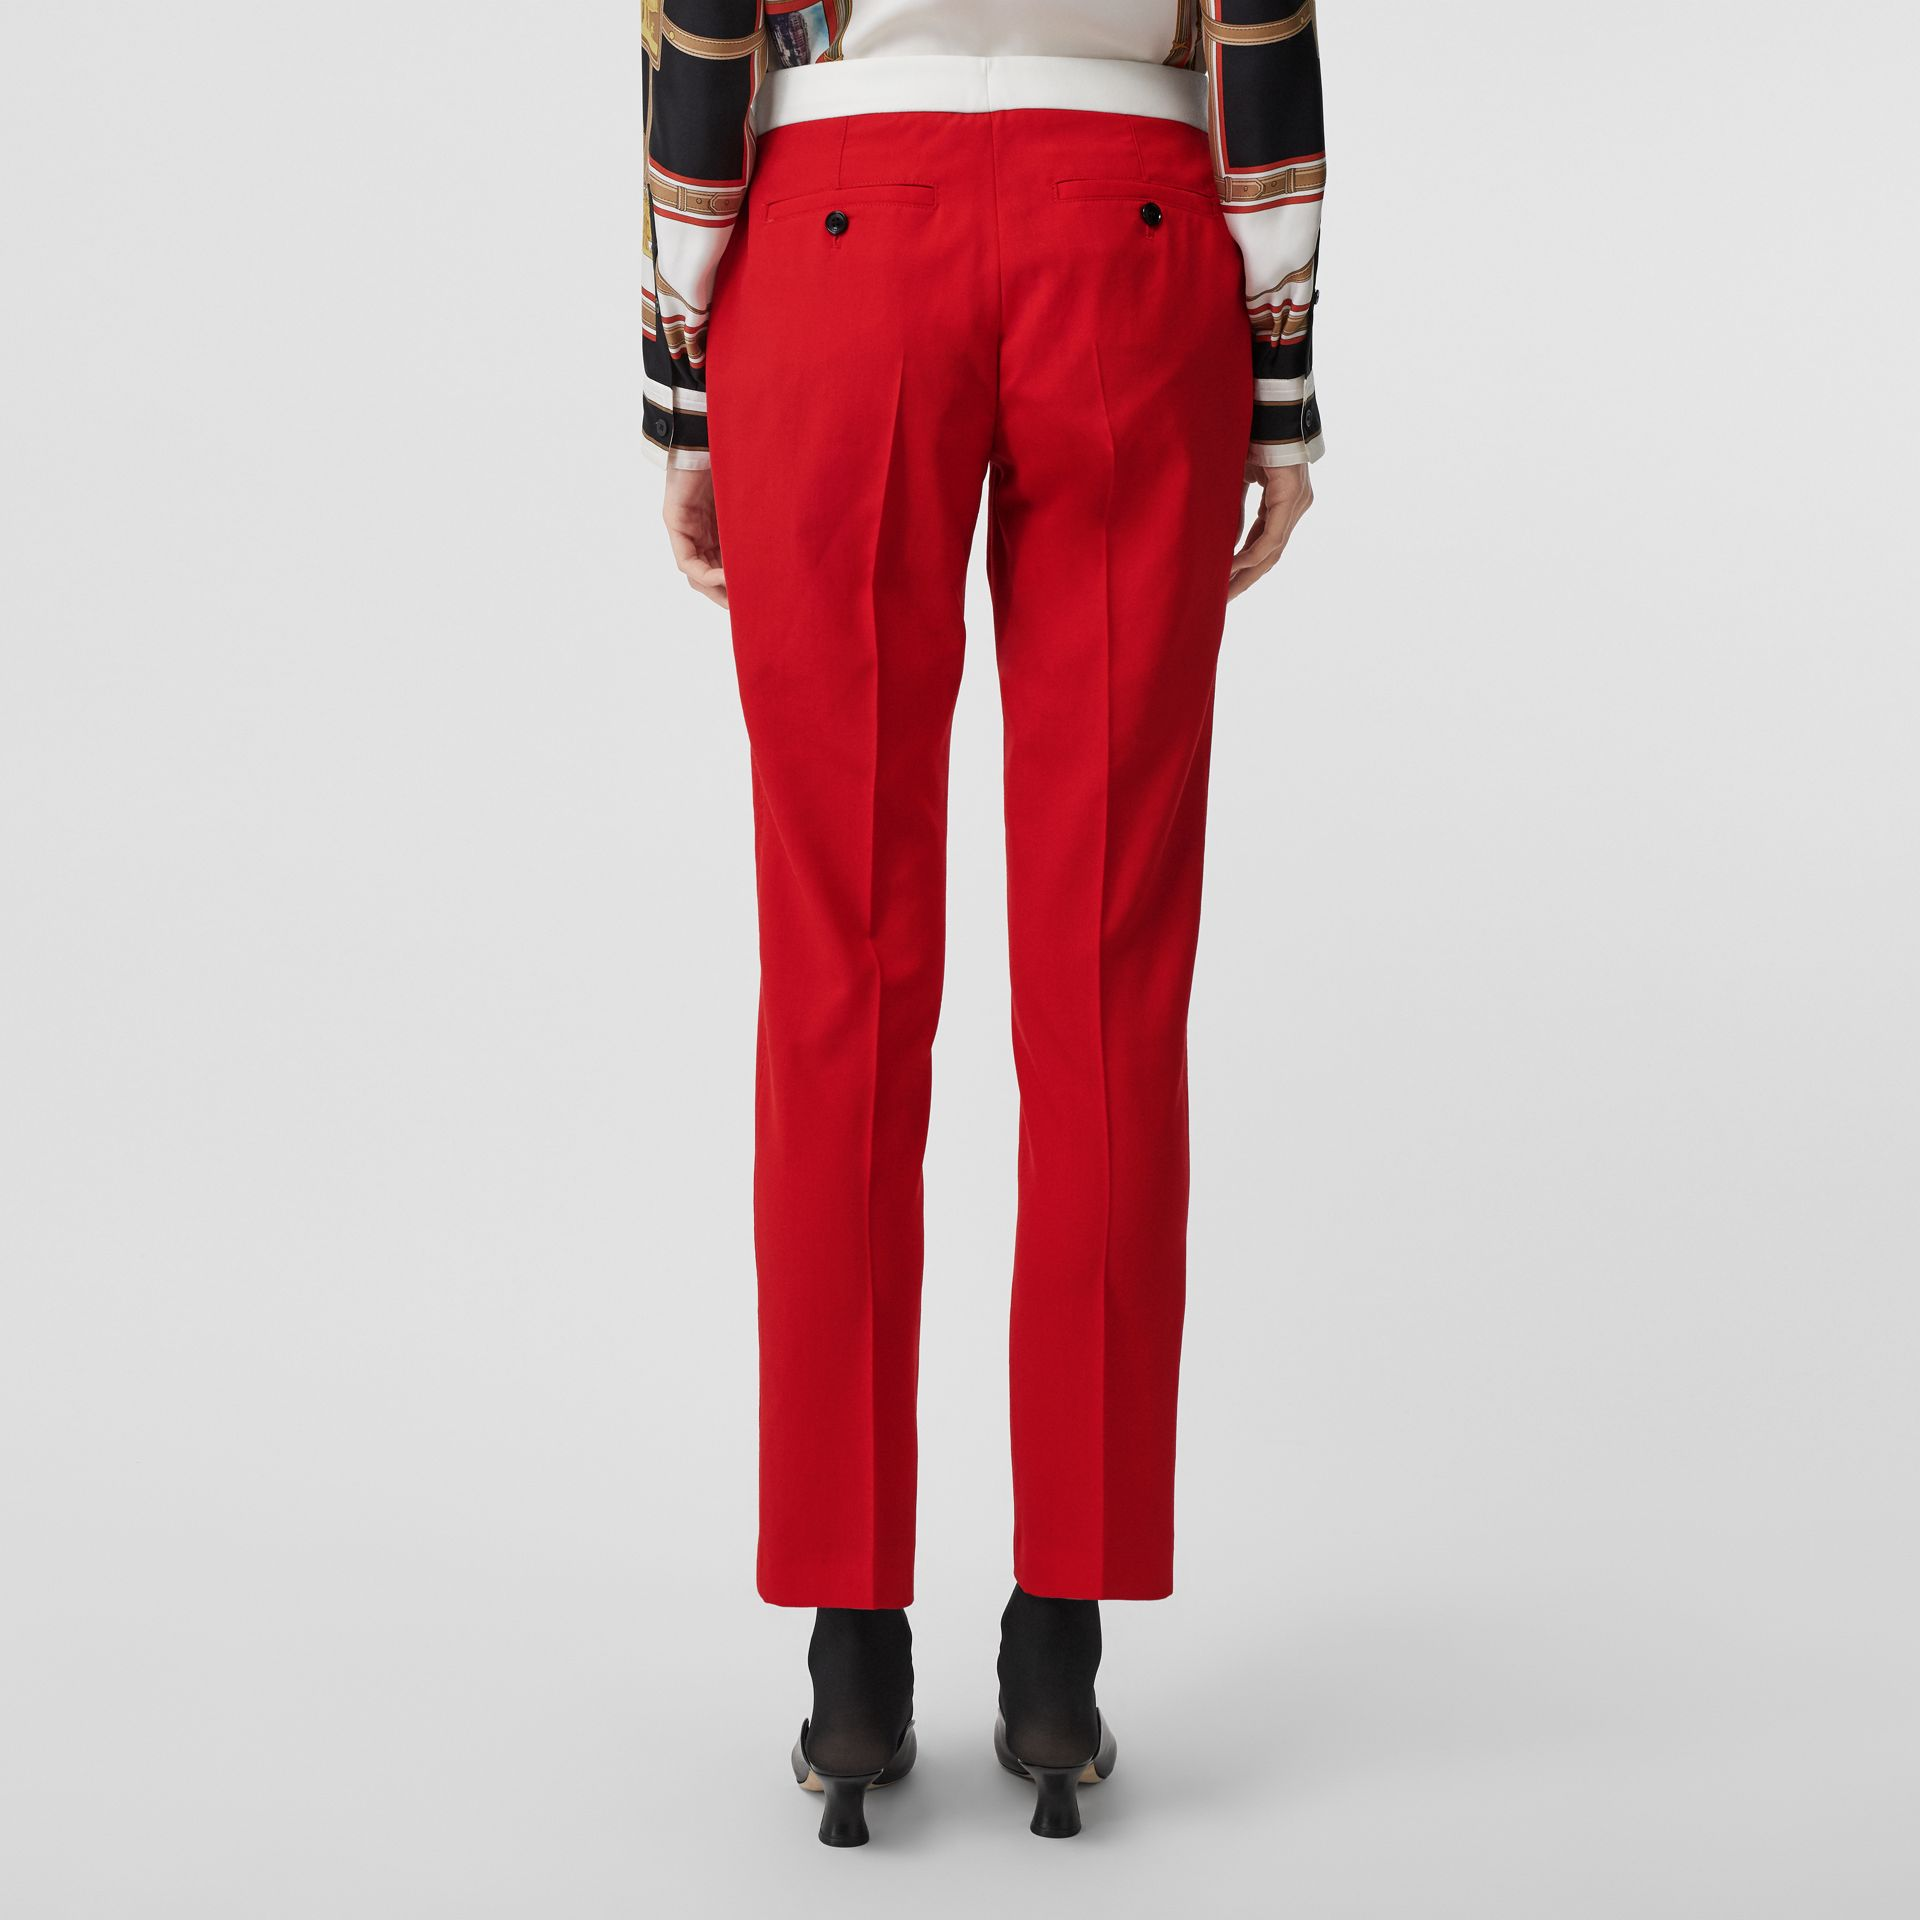 Two-tone Wool Tailored Trousers in Bright Red - Women | Burberry Canada - gallery image 2